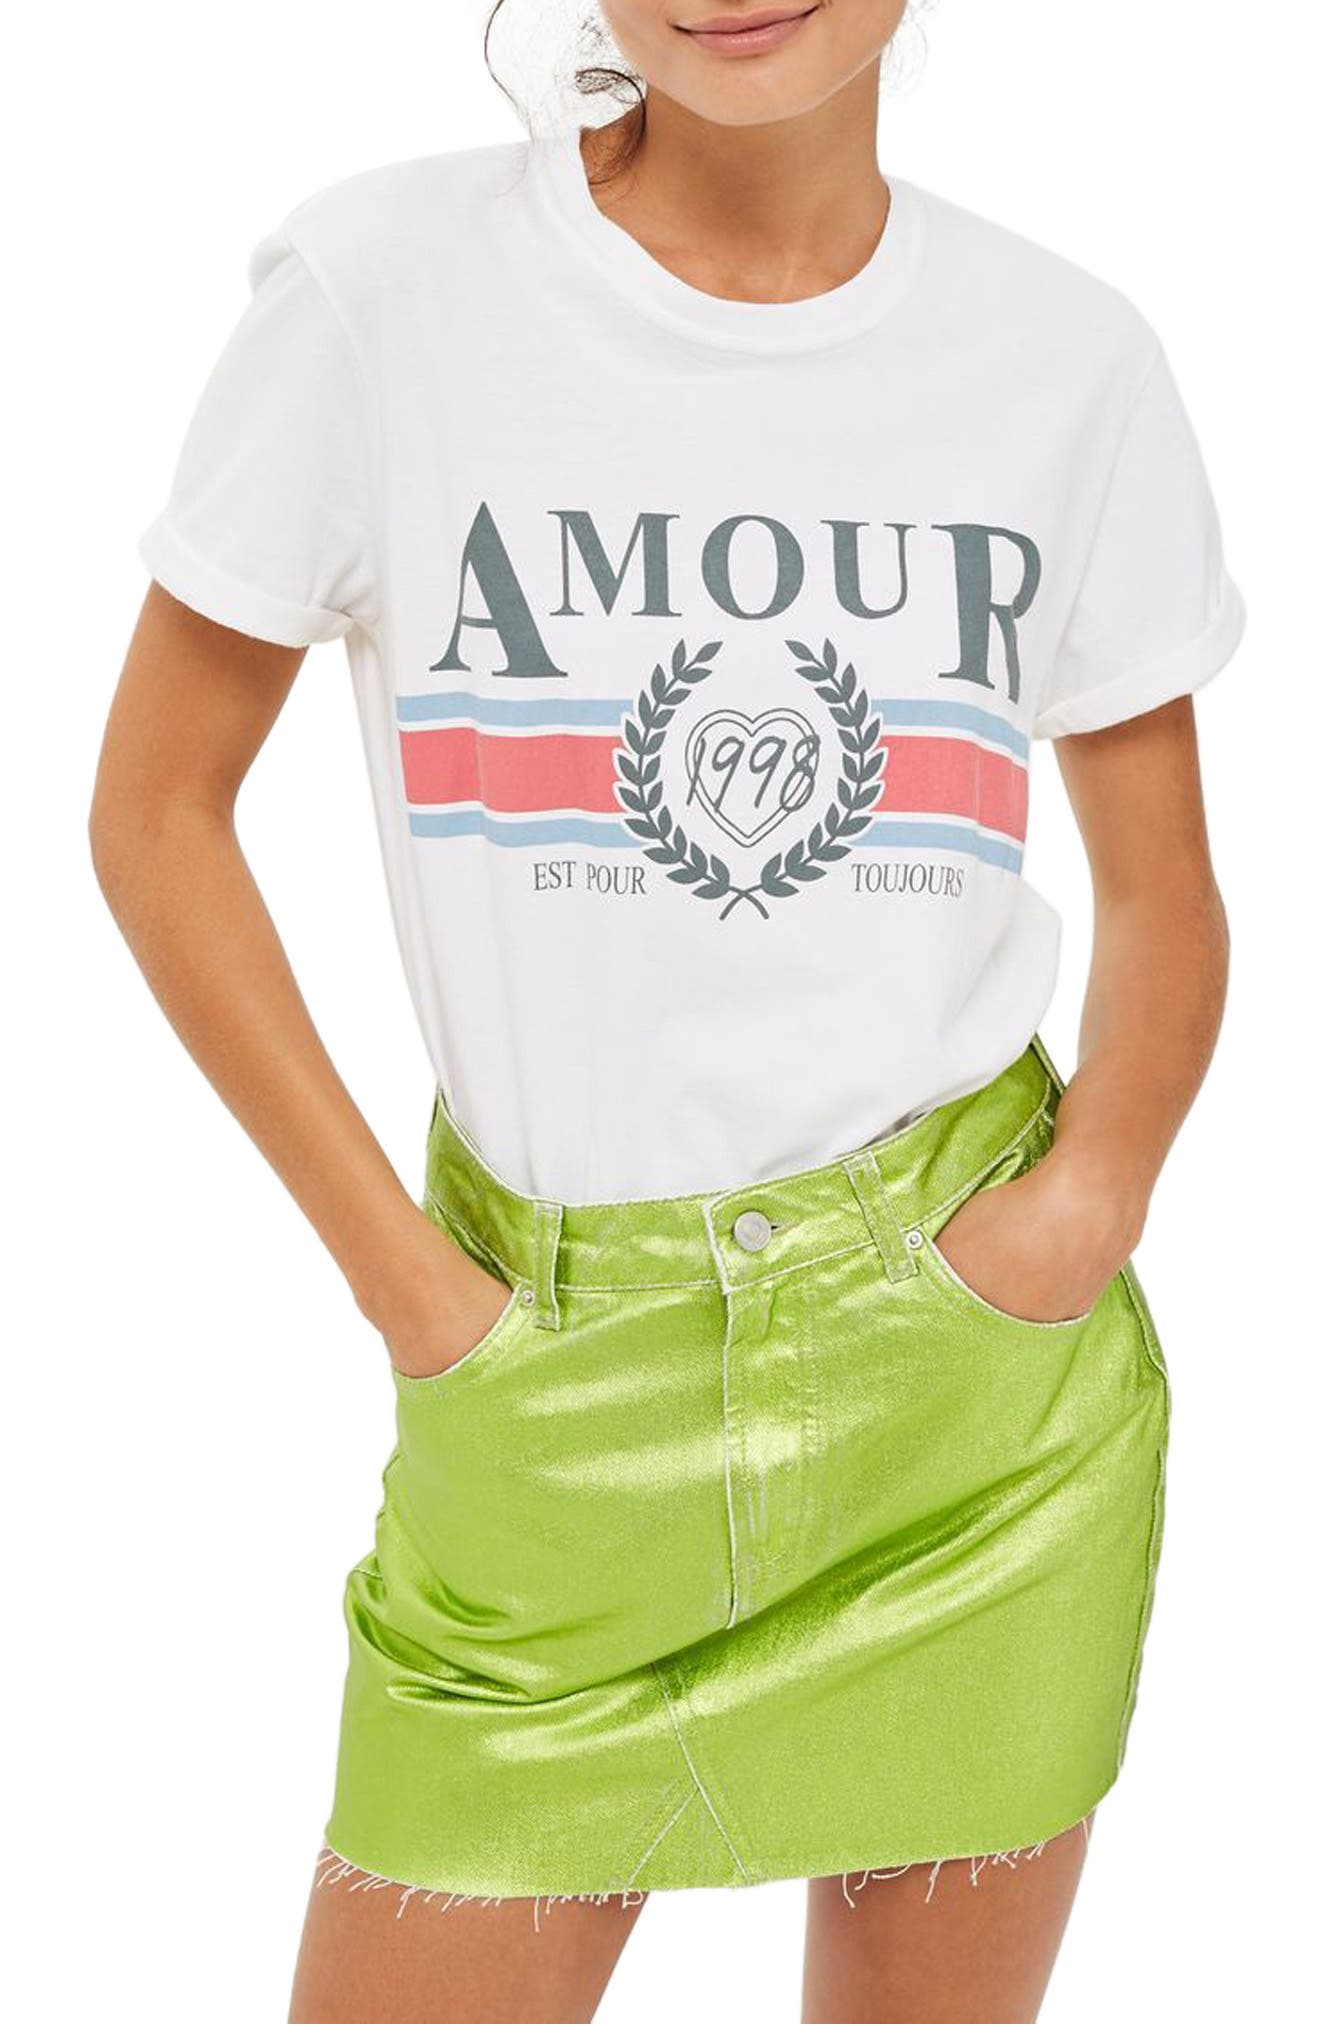 Alternate Image 1 Selected - Topshop Amour Graphic Tee